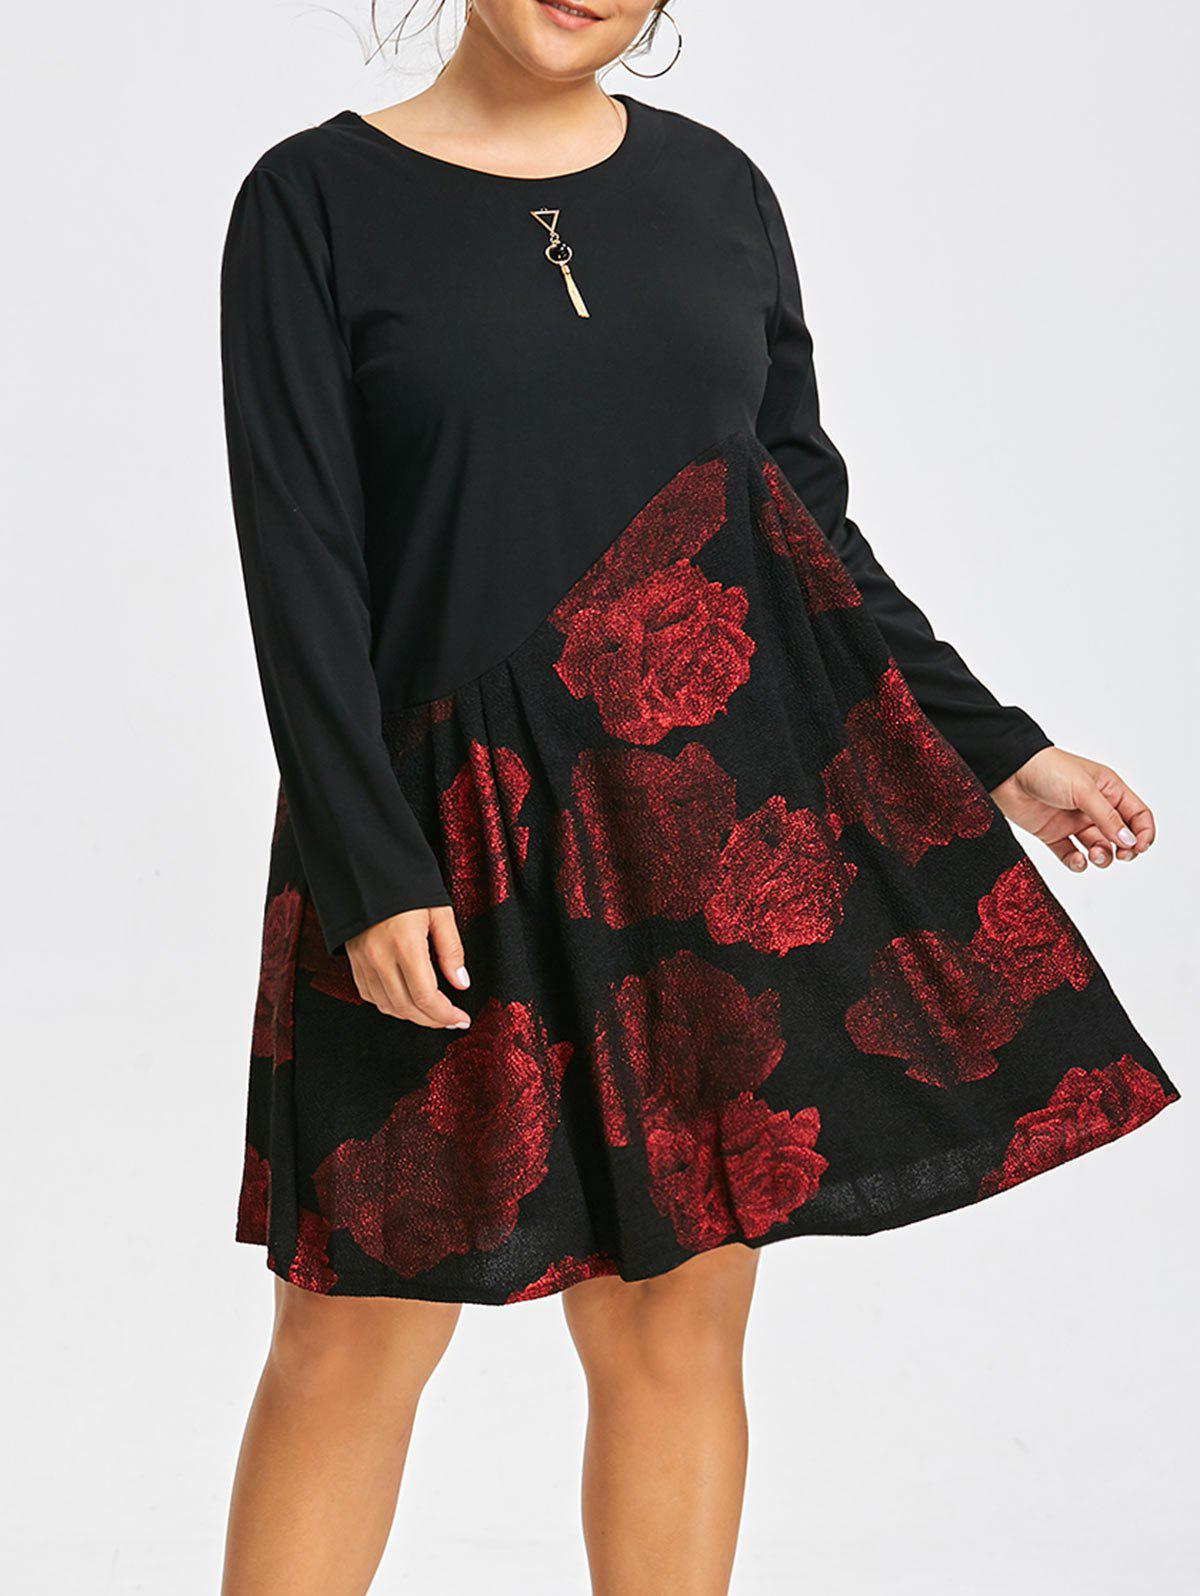 Bronzing Floral Panel Plus Size Long Sleeve DressWOMEN<br><br>Size: 5XL; Color: WINE RED; Style: Cute; Material: Polyester,Spandex; Silhouette: Straight; Dresses Length: Knee-Length; Neckline: Round Collar; Sleeve Length: Long Sleeves; Pattern Type: Floral; With Belt: No; Season: Fall,Spring; Weight: 0.5150kg; Package Contents: 1 x Dress;